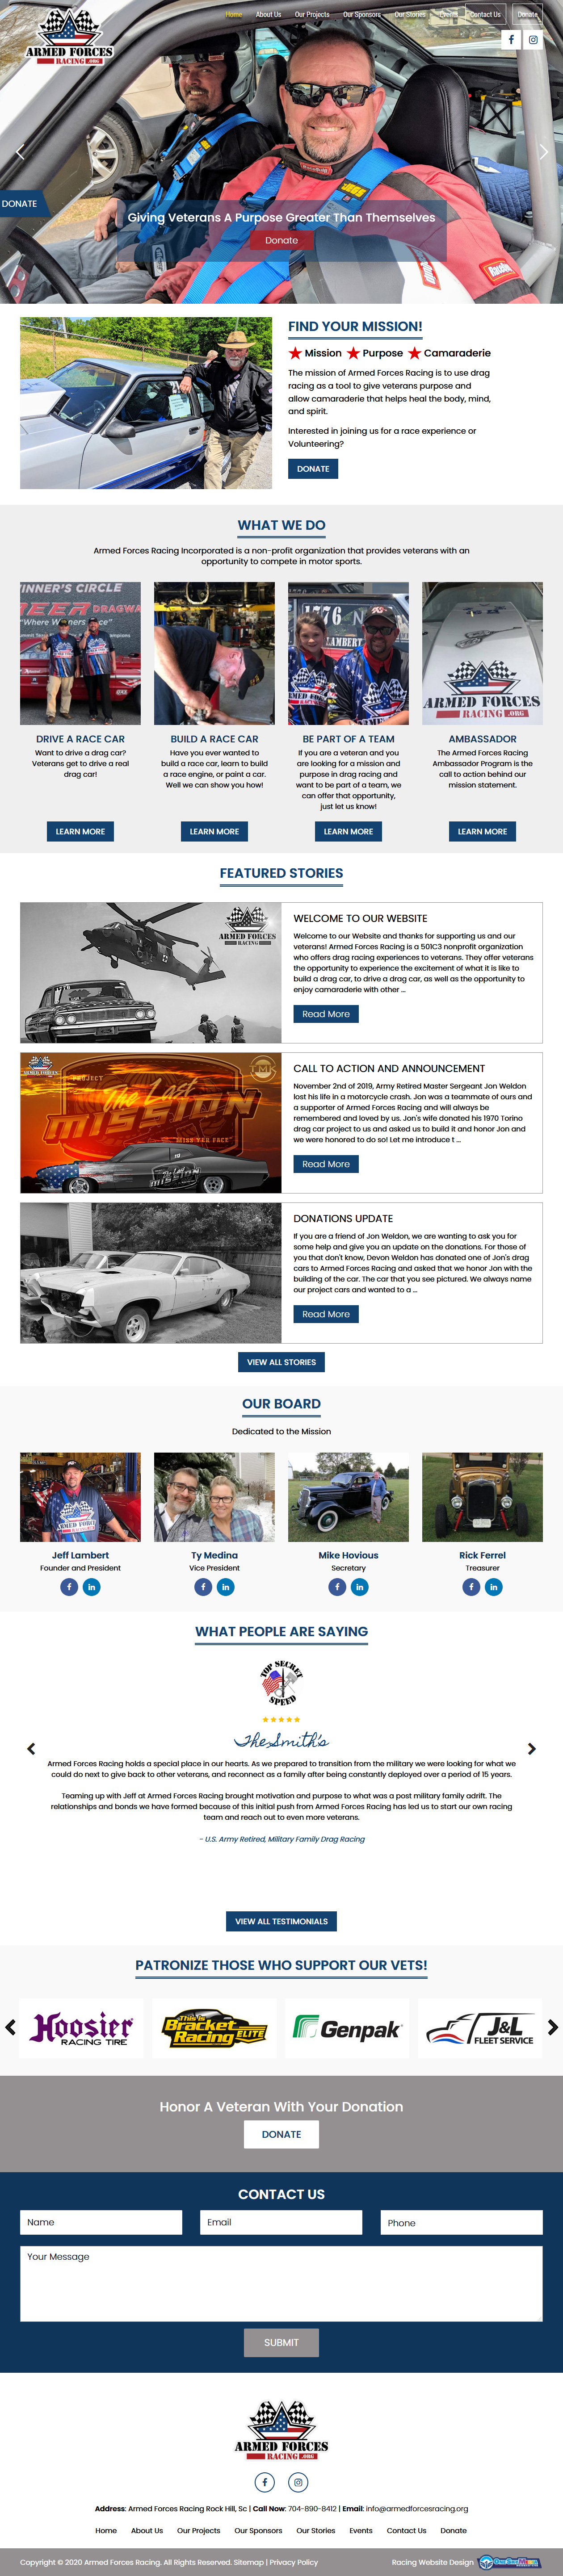 Armed Forces Racing - drag racing website design to support US Vets involvement in racing